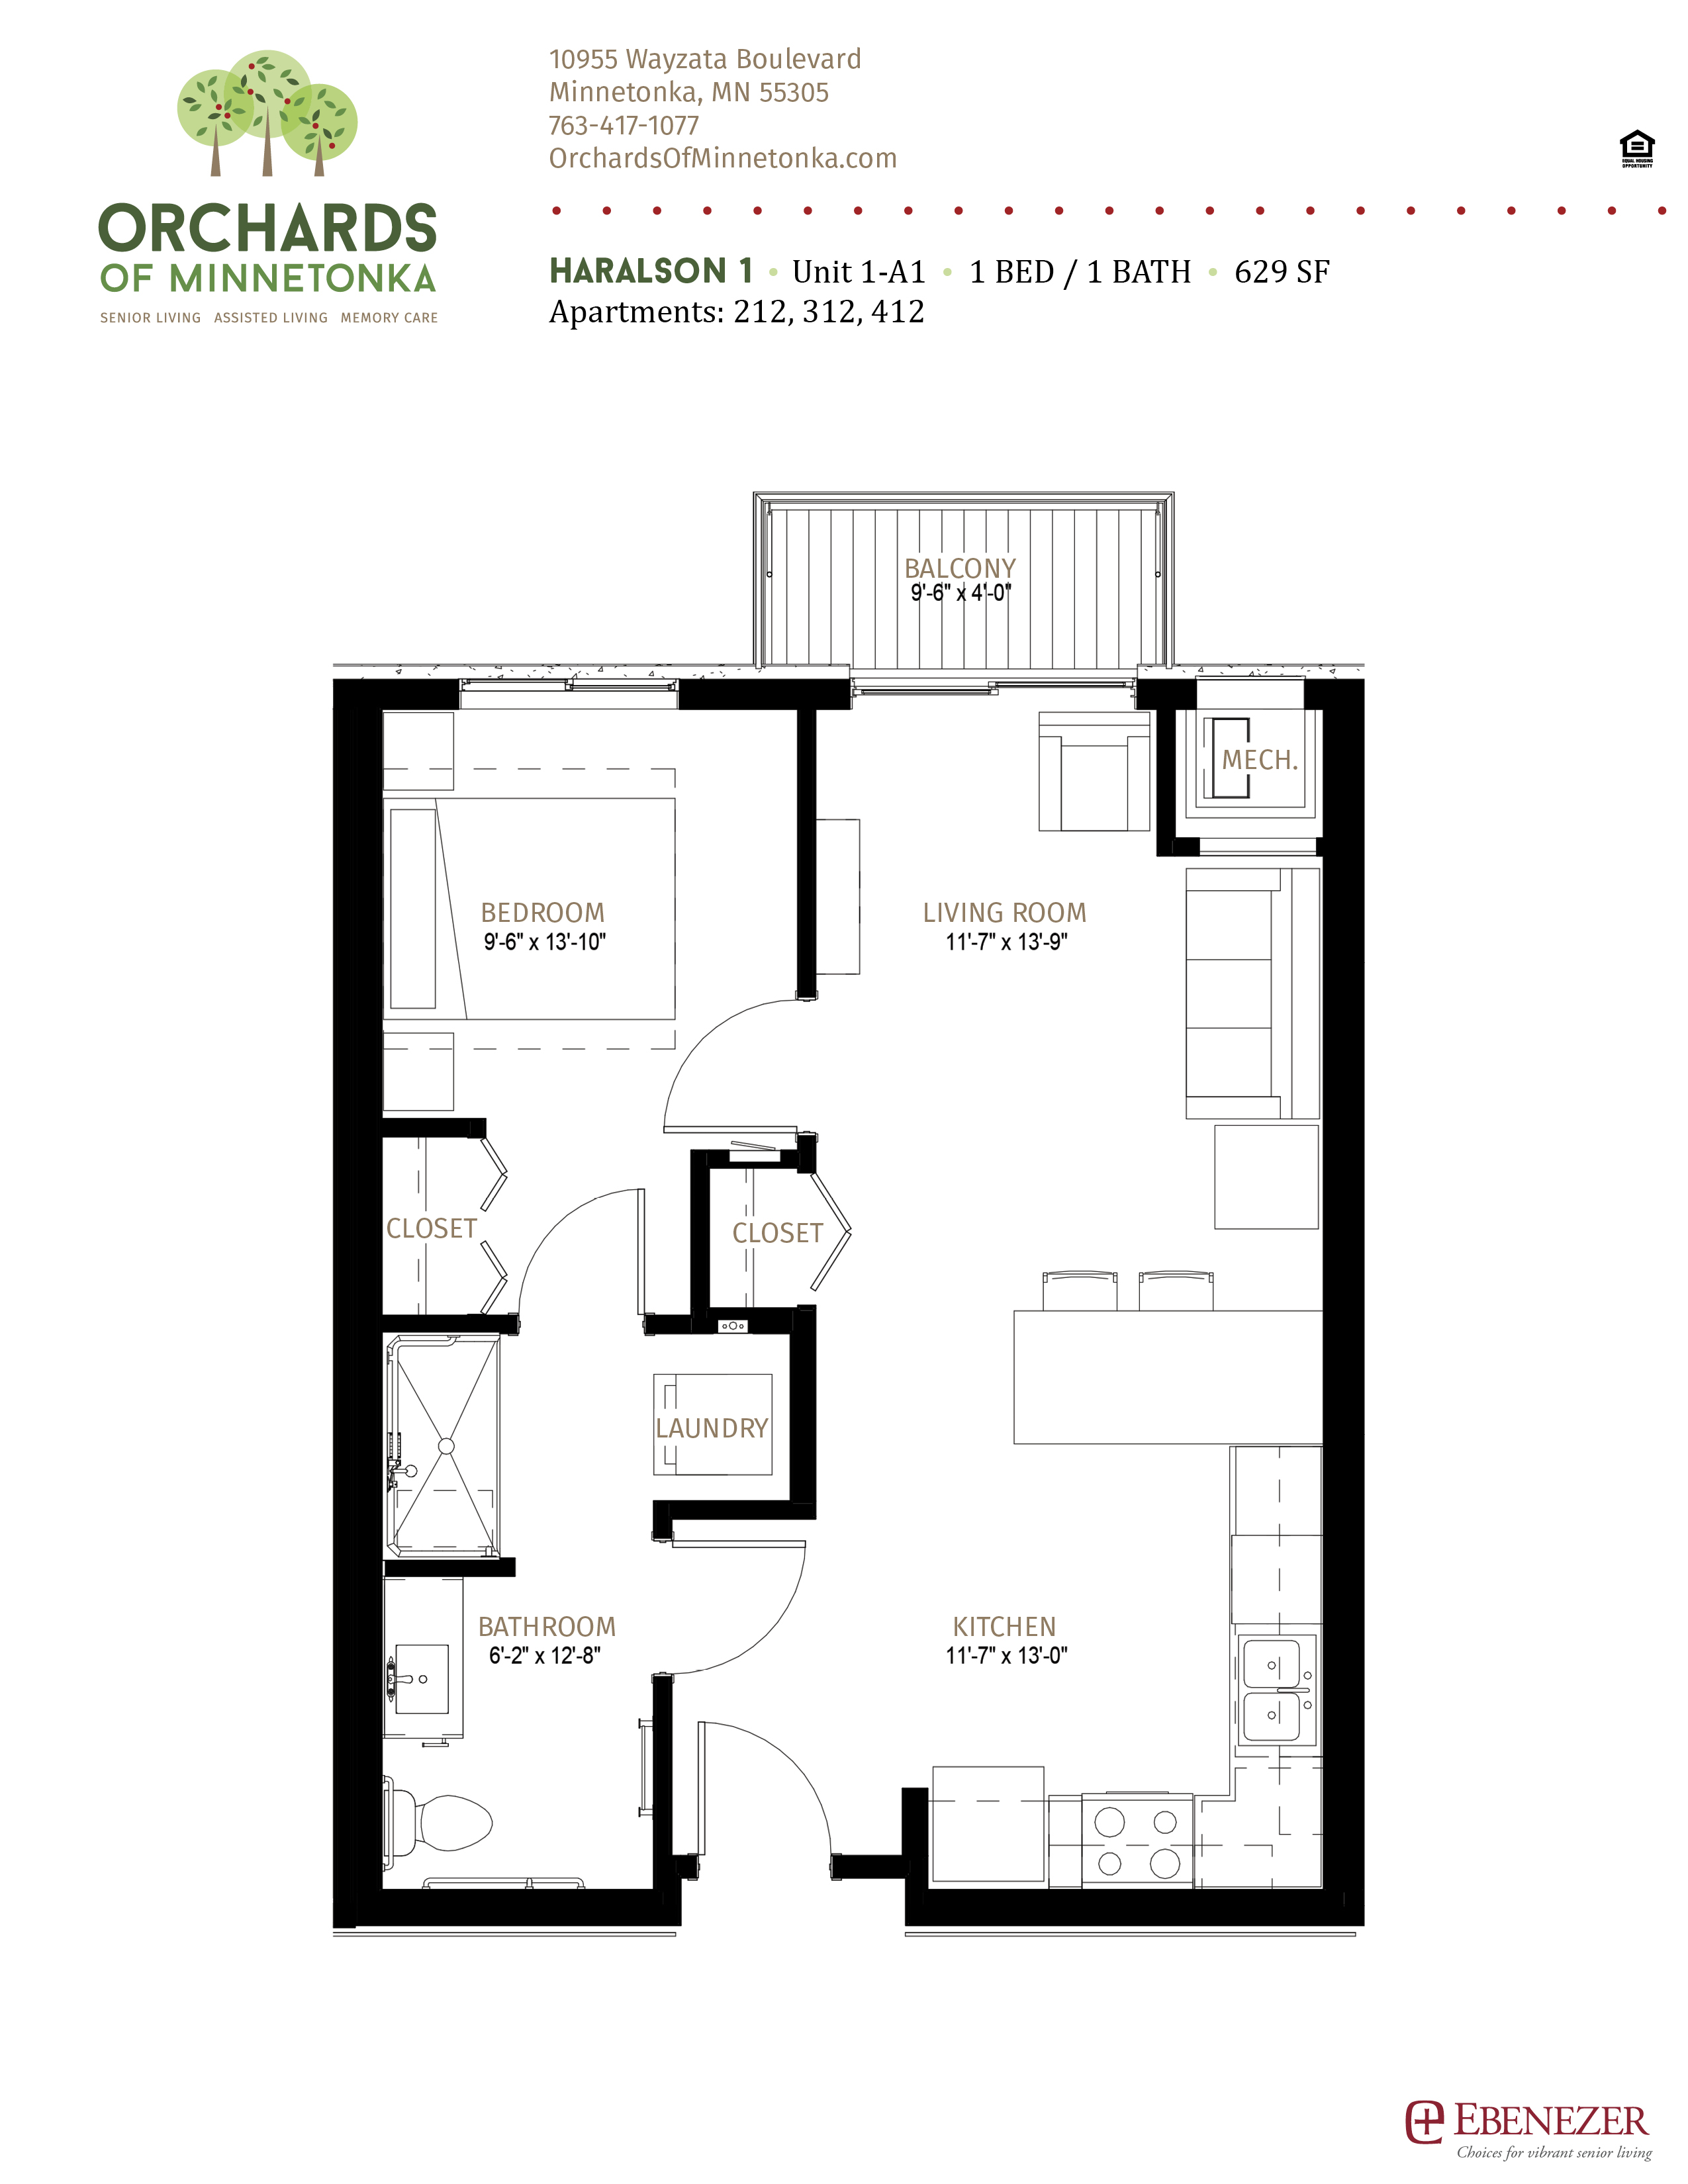 Orchards of Minnetonka - Haralson - Senior Living Unit 1 - A1B